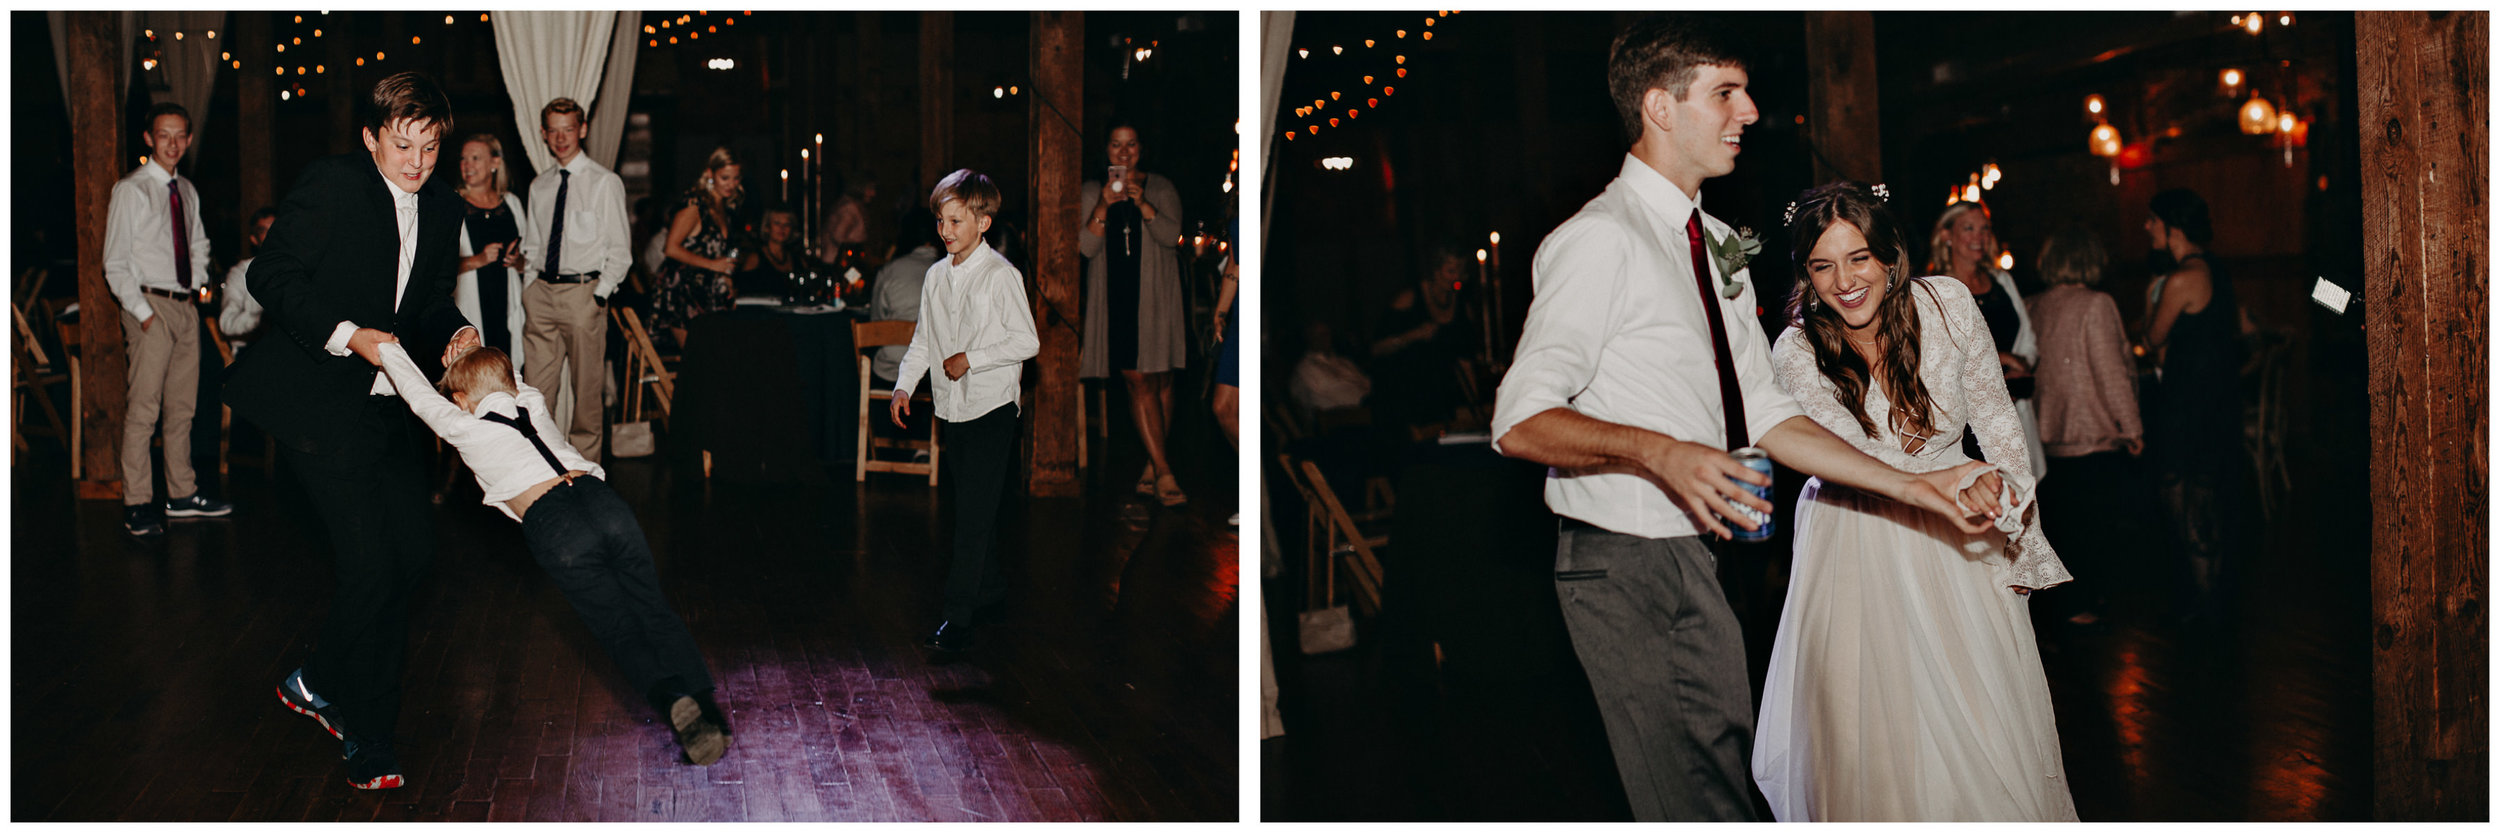 160 - Bride and groom : Dancing: Details : Toasts wedding - Atlanta wedding photographer.JPG